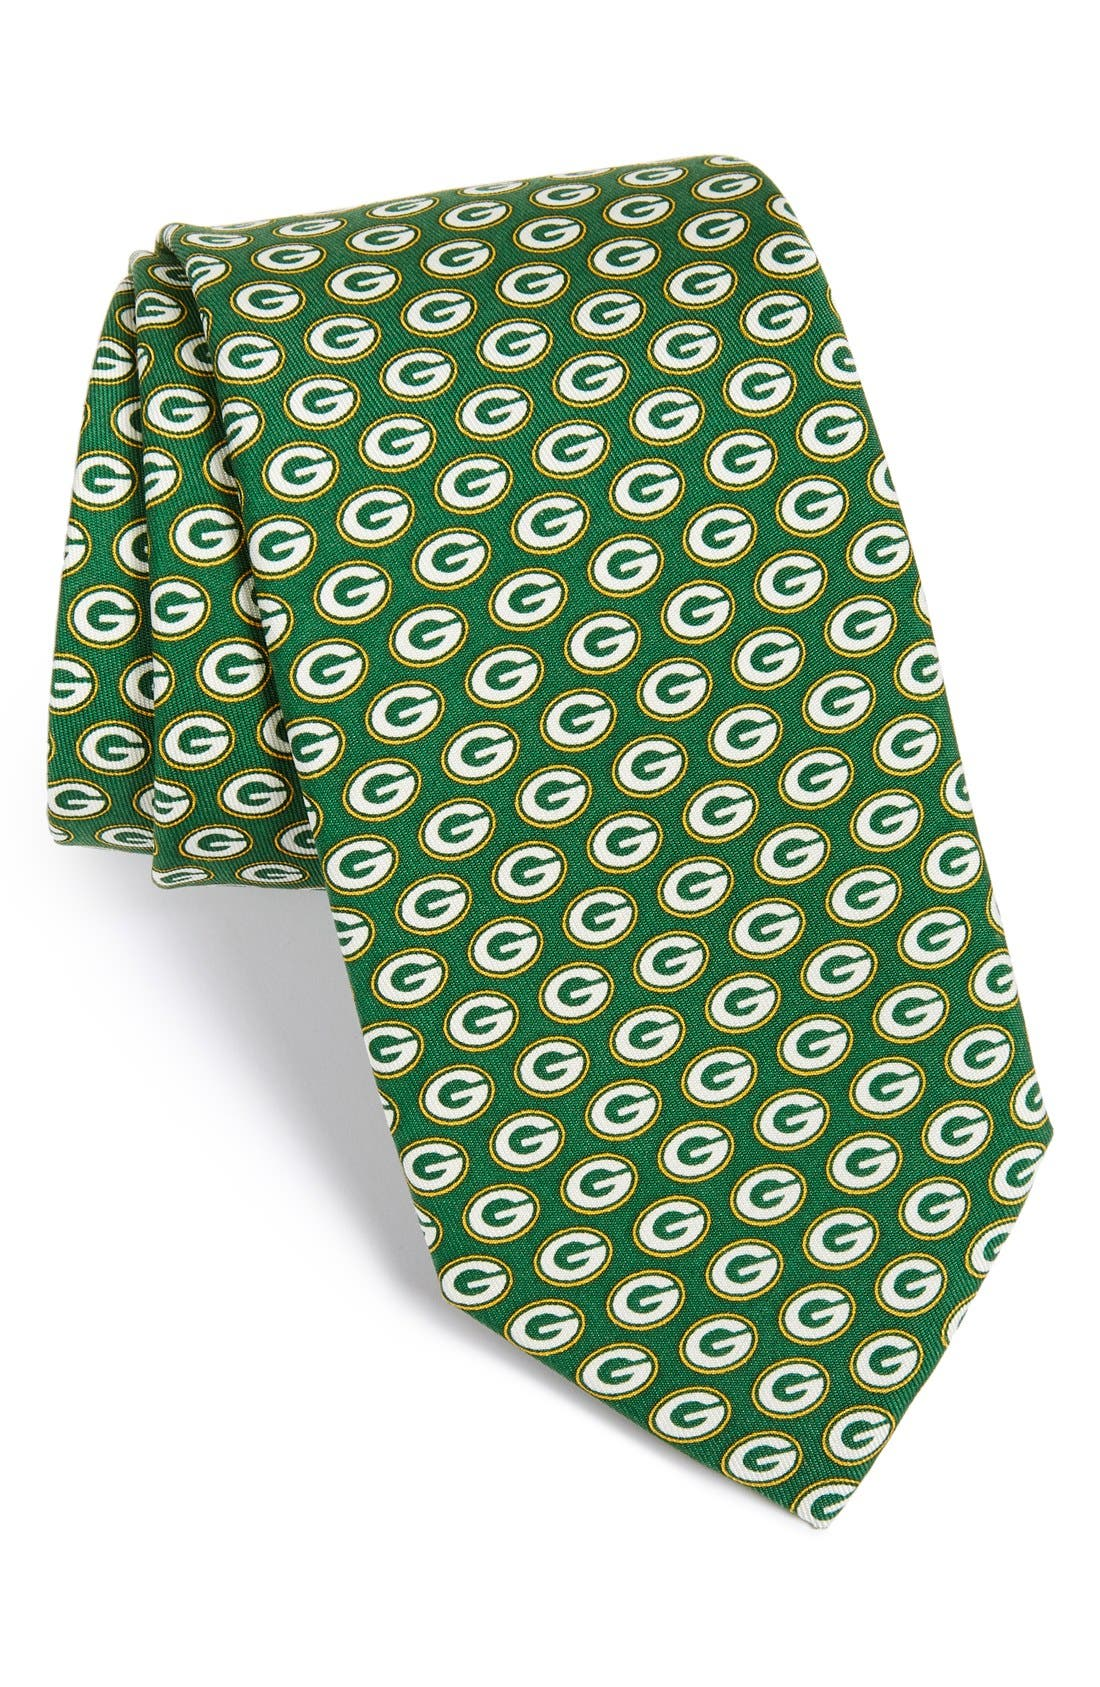 Green Bay Packers - NFL Woven Silk Tie,                             Main thumbnail 1, color,                             Green